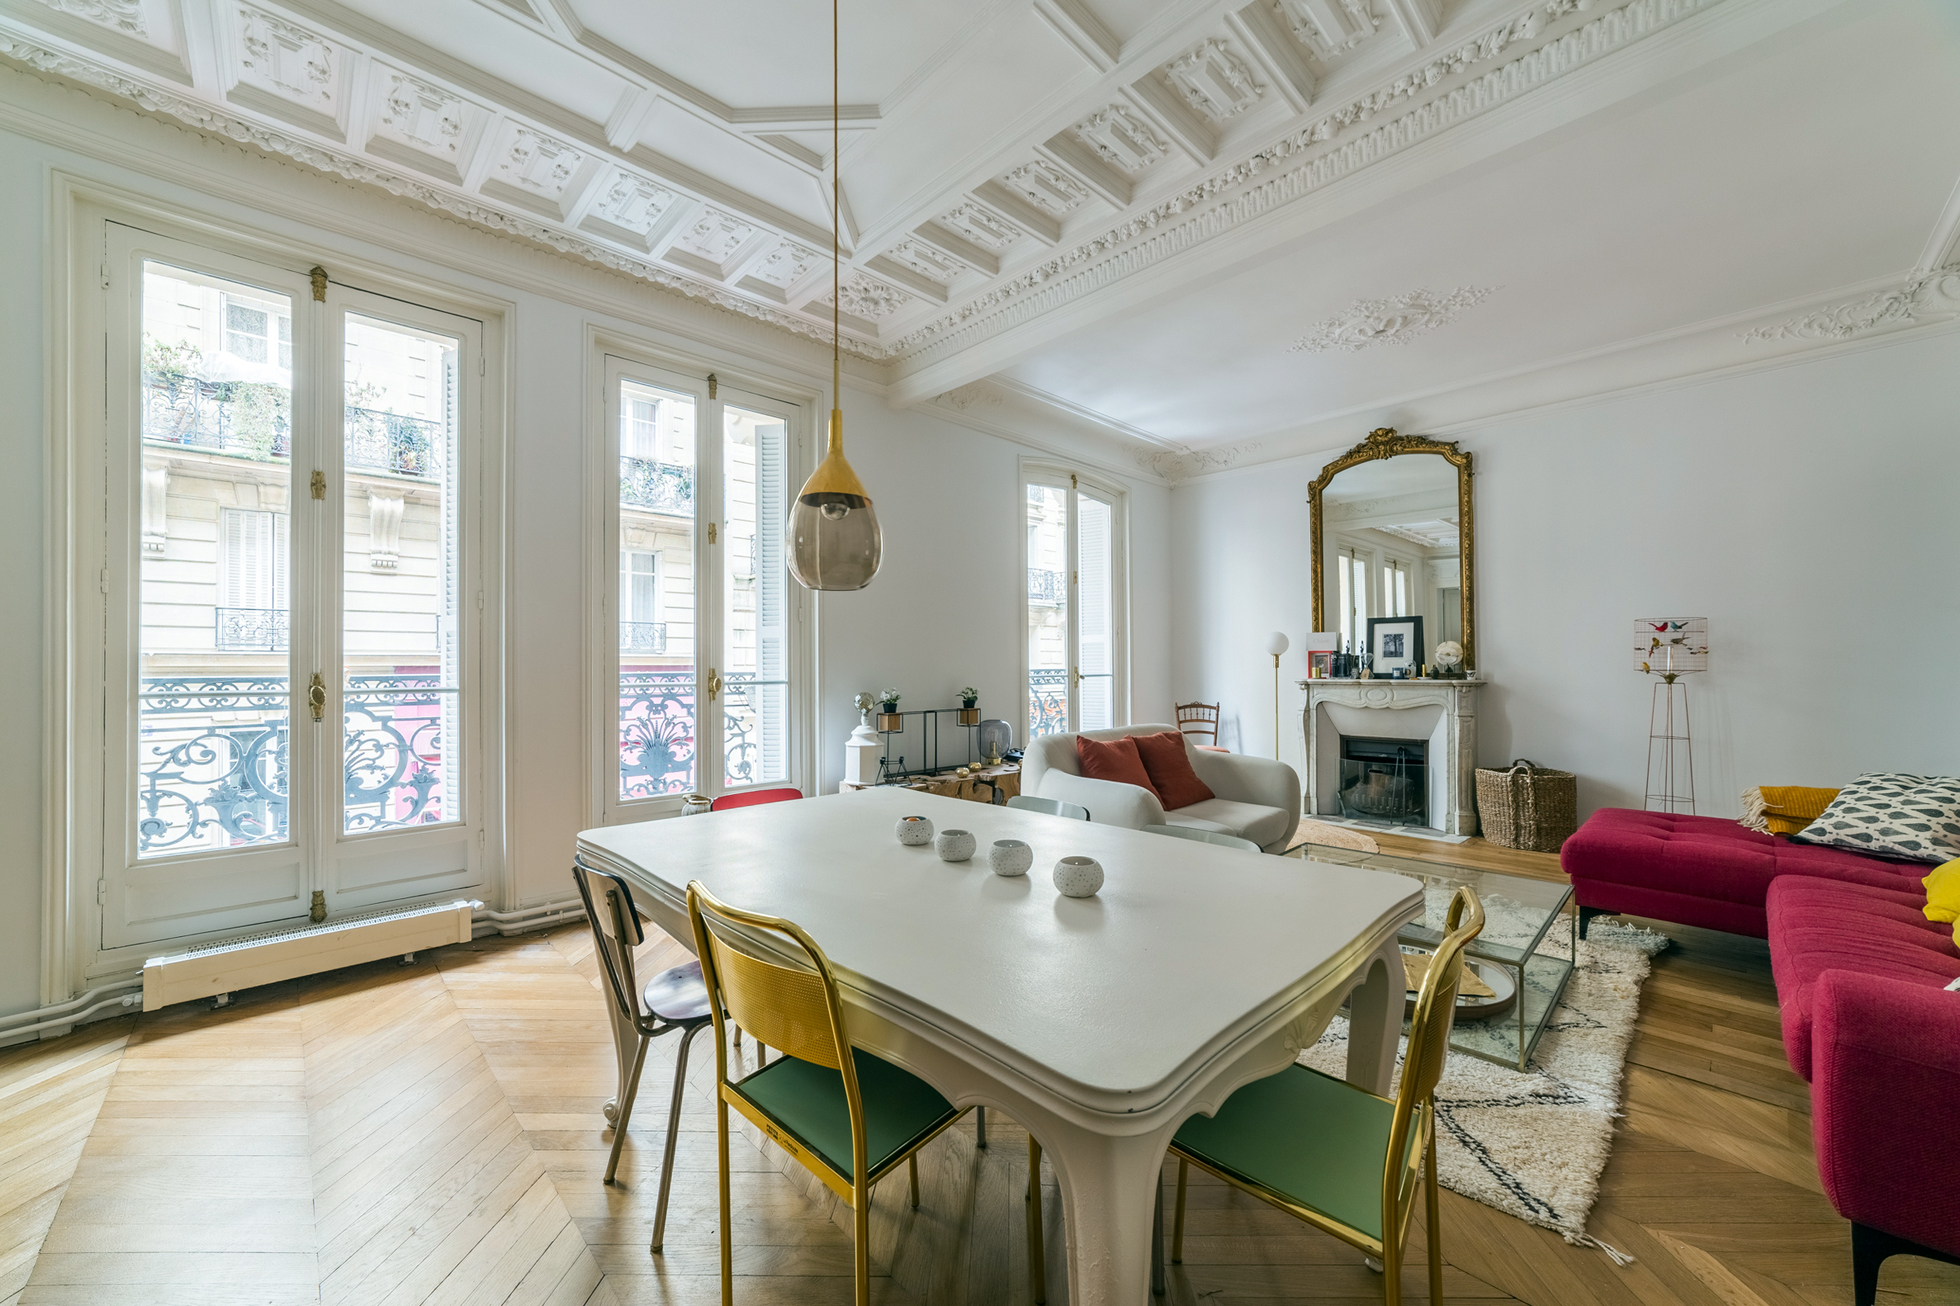 French style apartment with dining table and couch